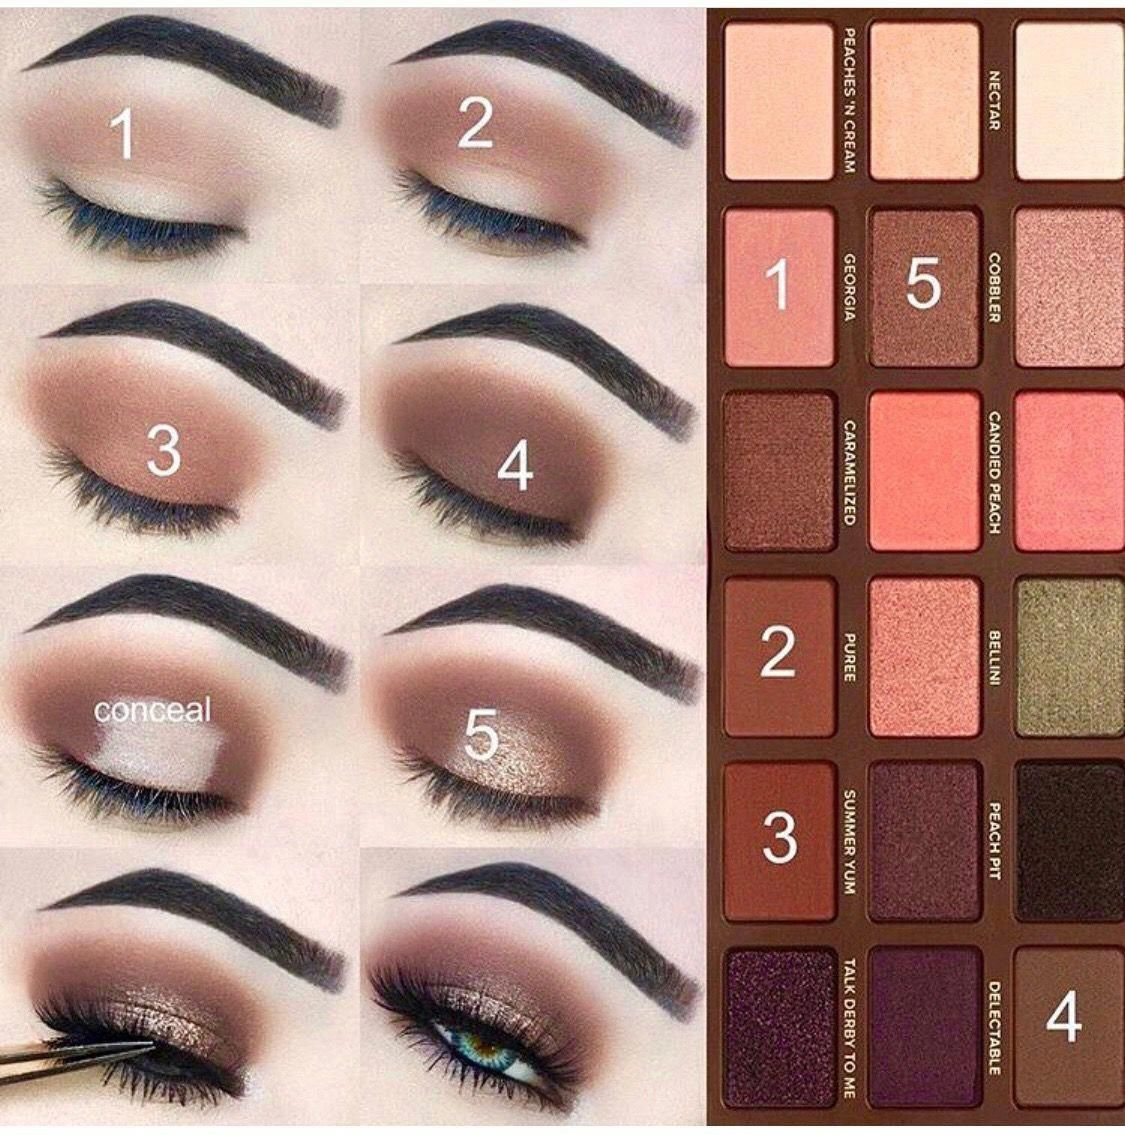 Too Faced eye shadow palette eye makeup step by step